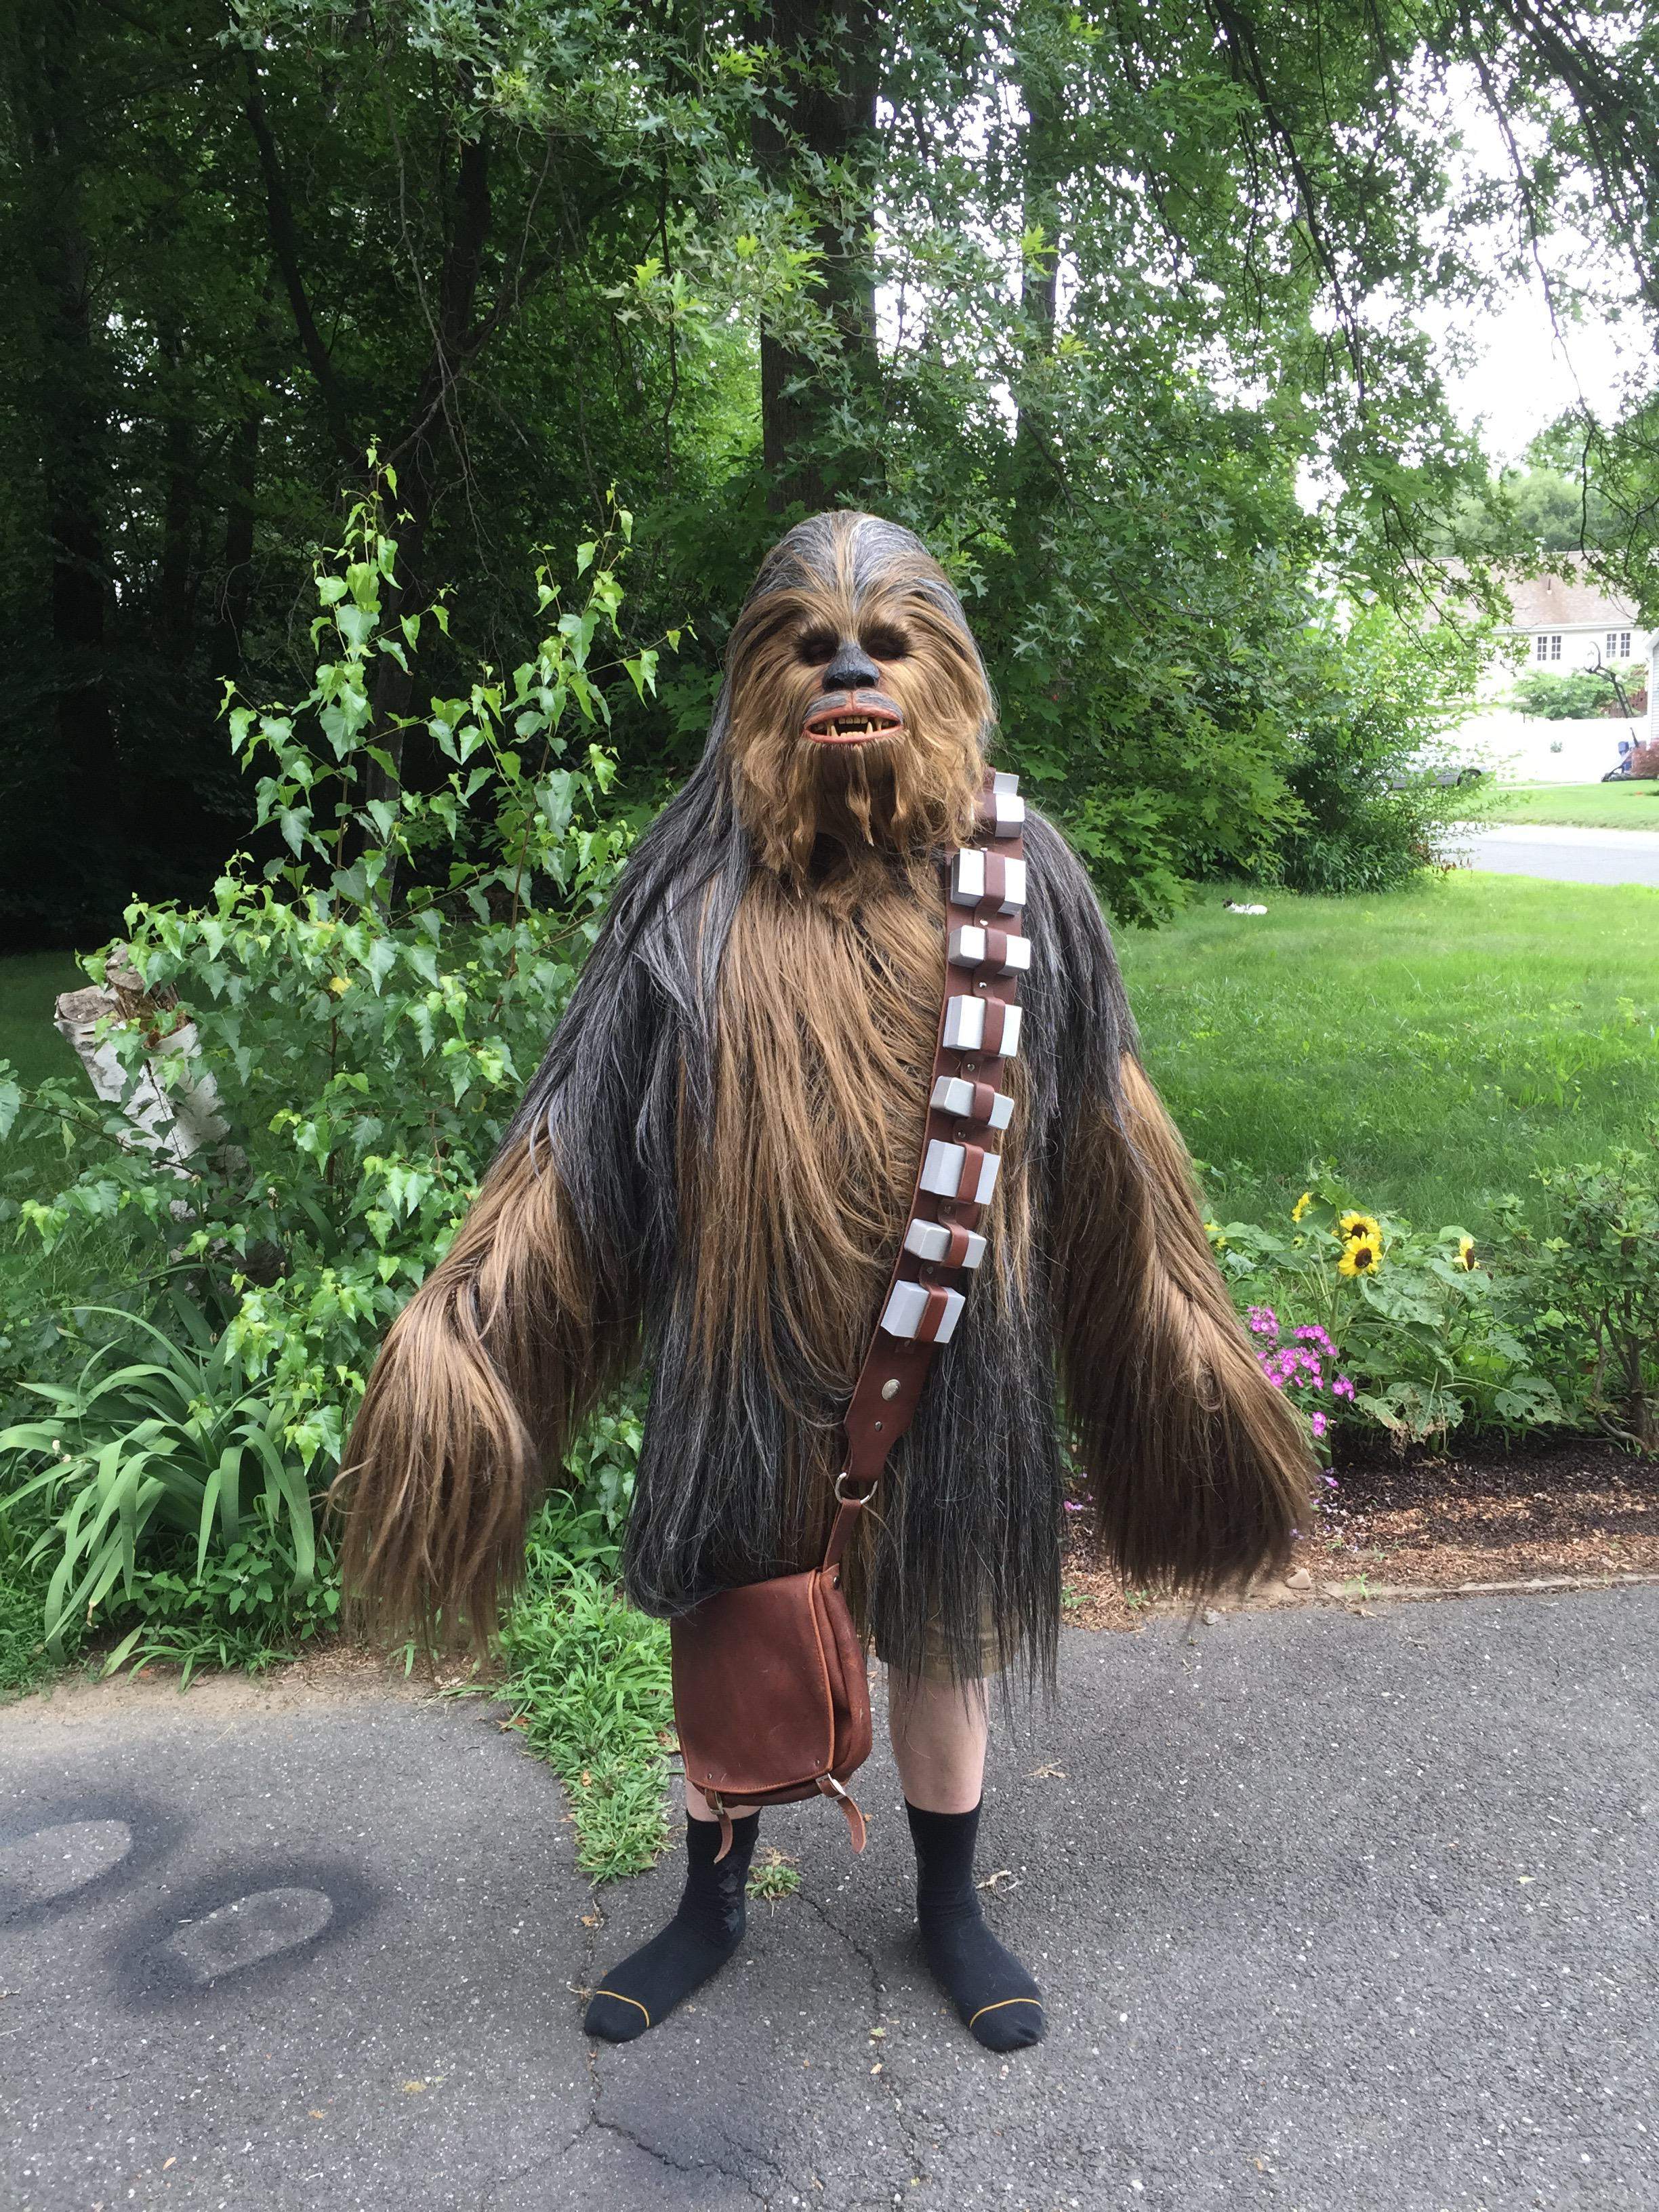 chewie17 Watch This Guy Make The most Awesome Chewbacca Costume Youve Ever Seen